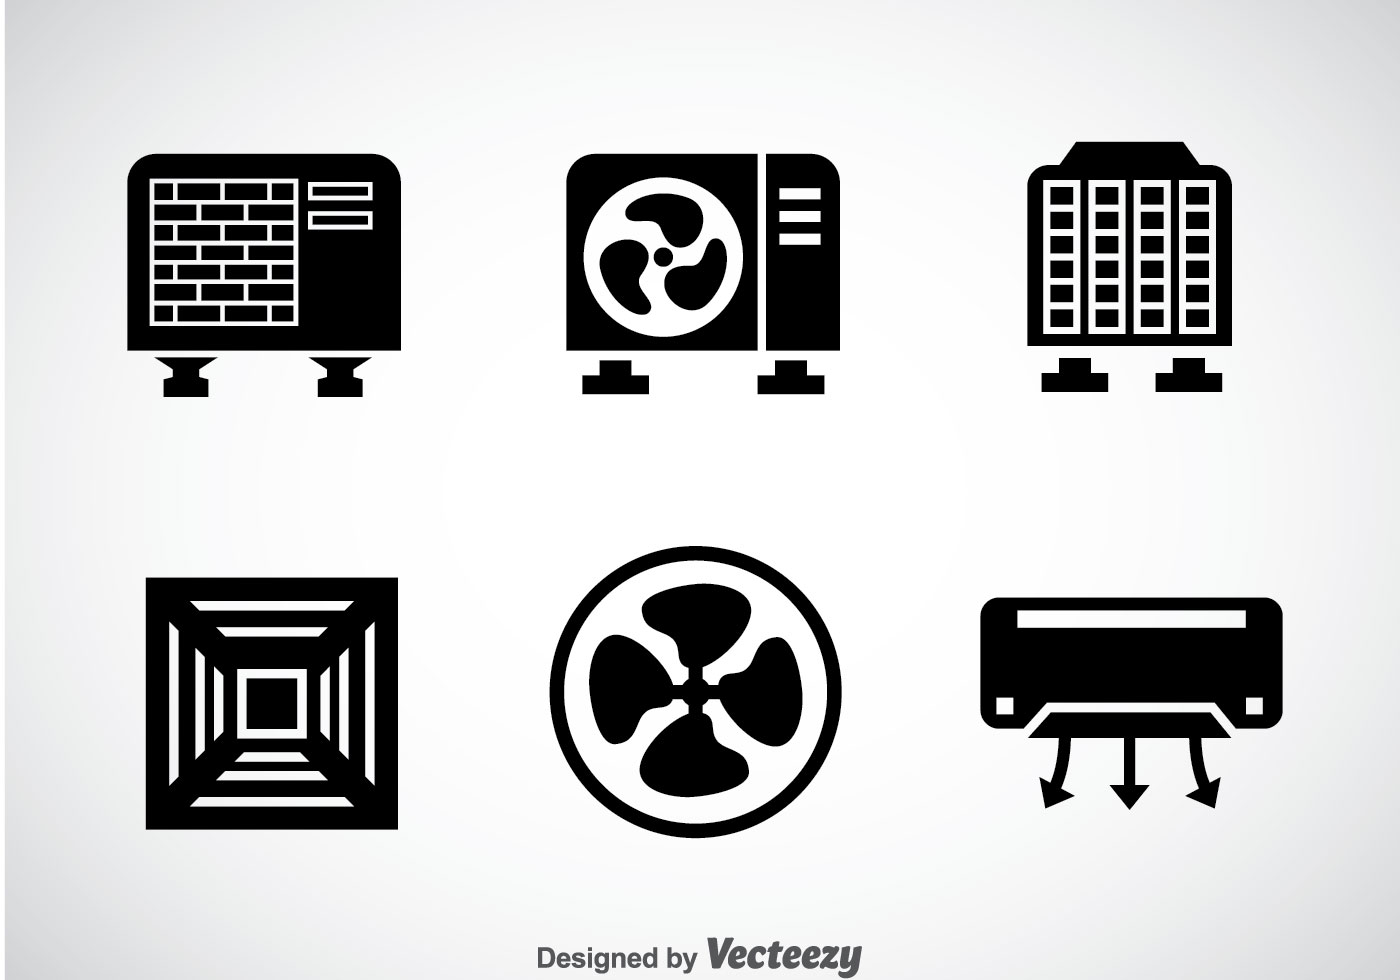 Air Conditioning Free Vector Art 4827 Downloads Drawing Of Hvac System Black Icons